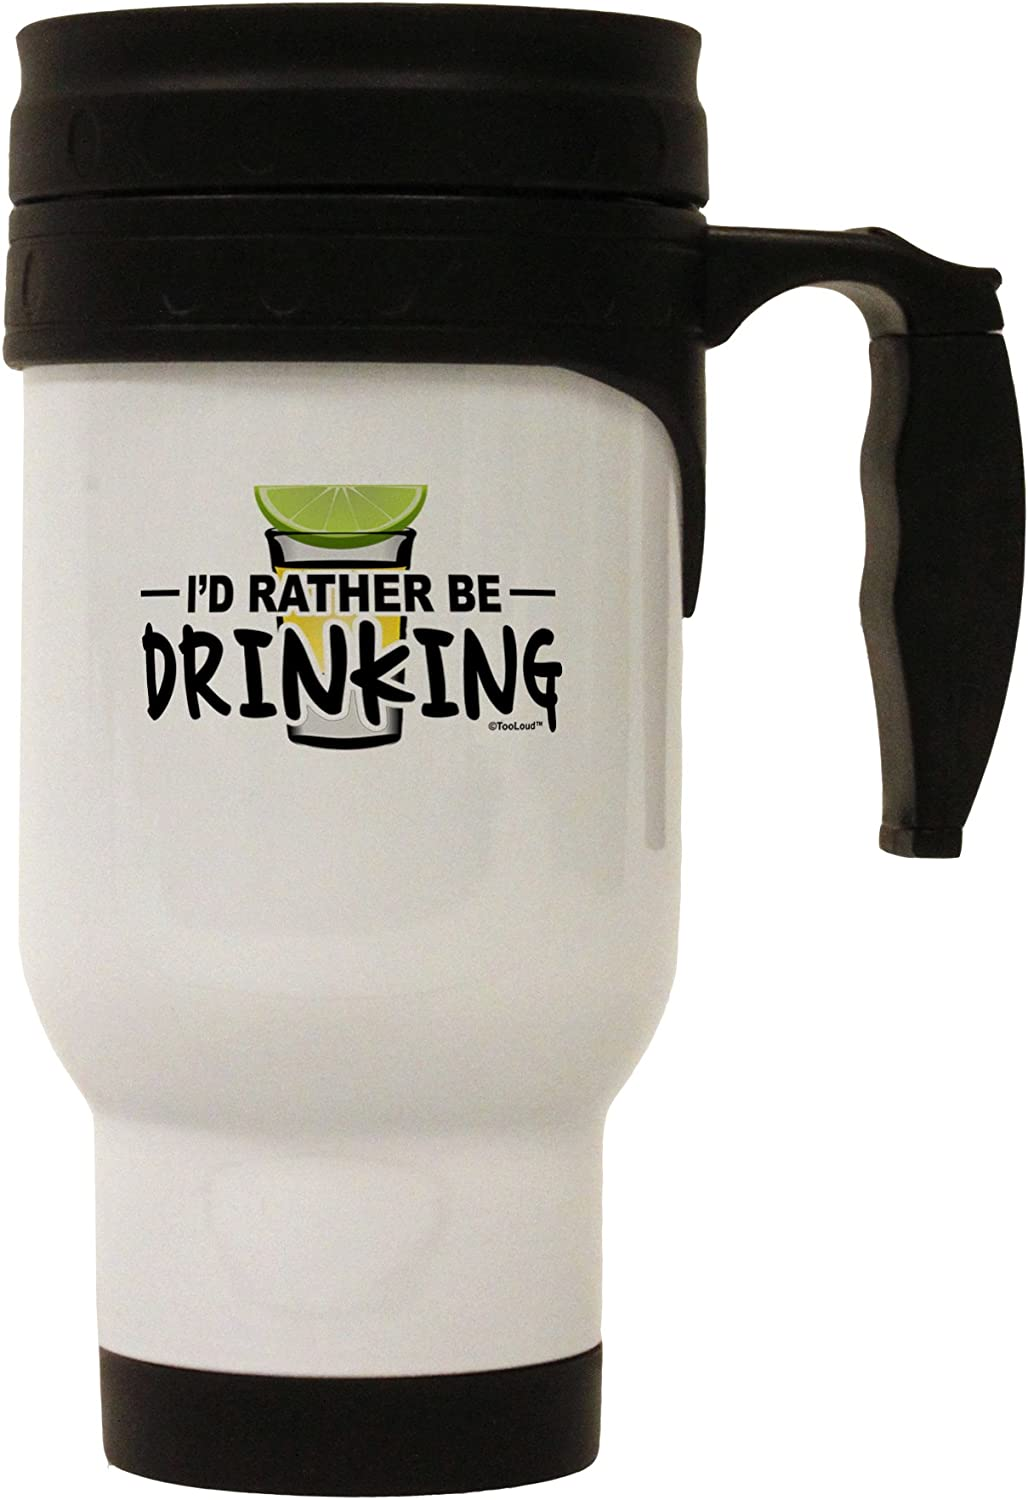 TooLoud I'd Rather Be Drinking Stainless Steel 14oz Travel Mug